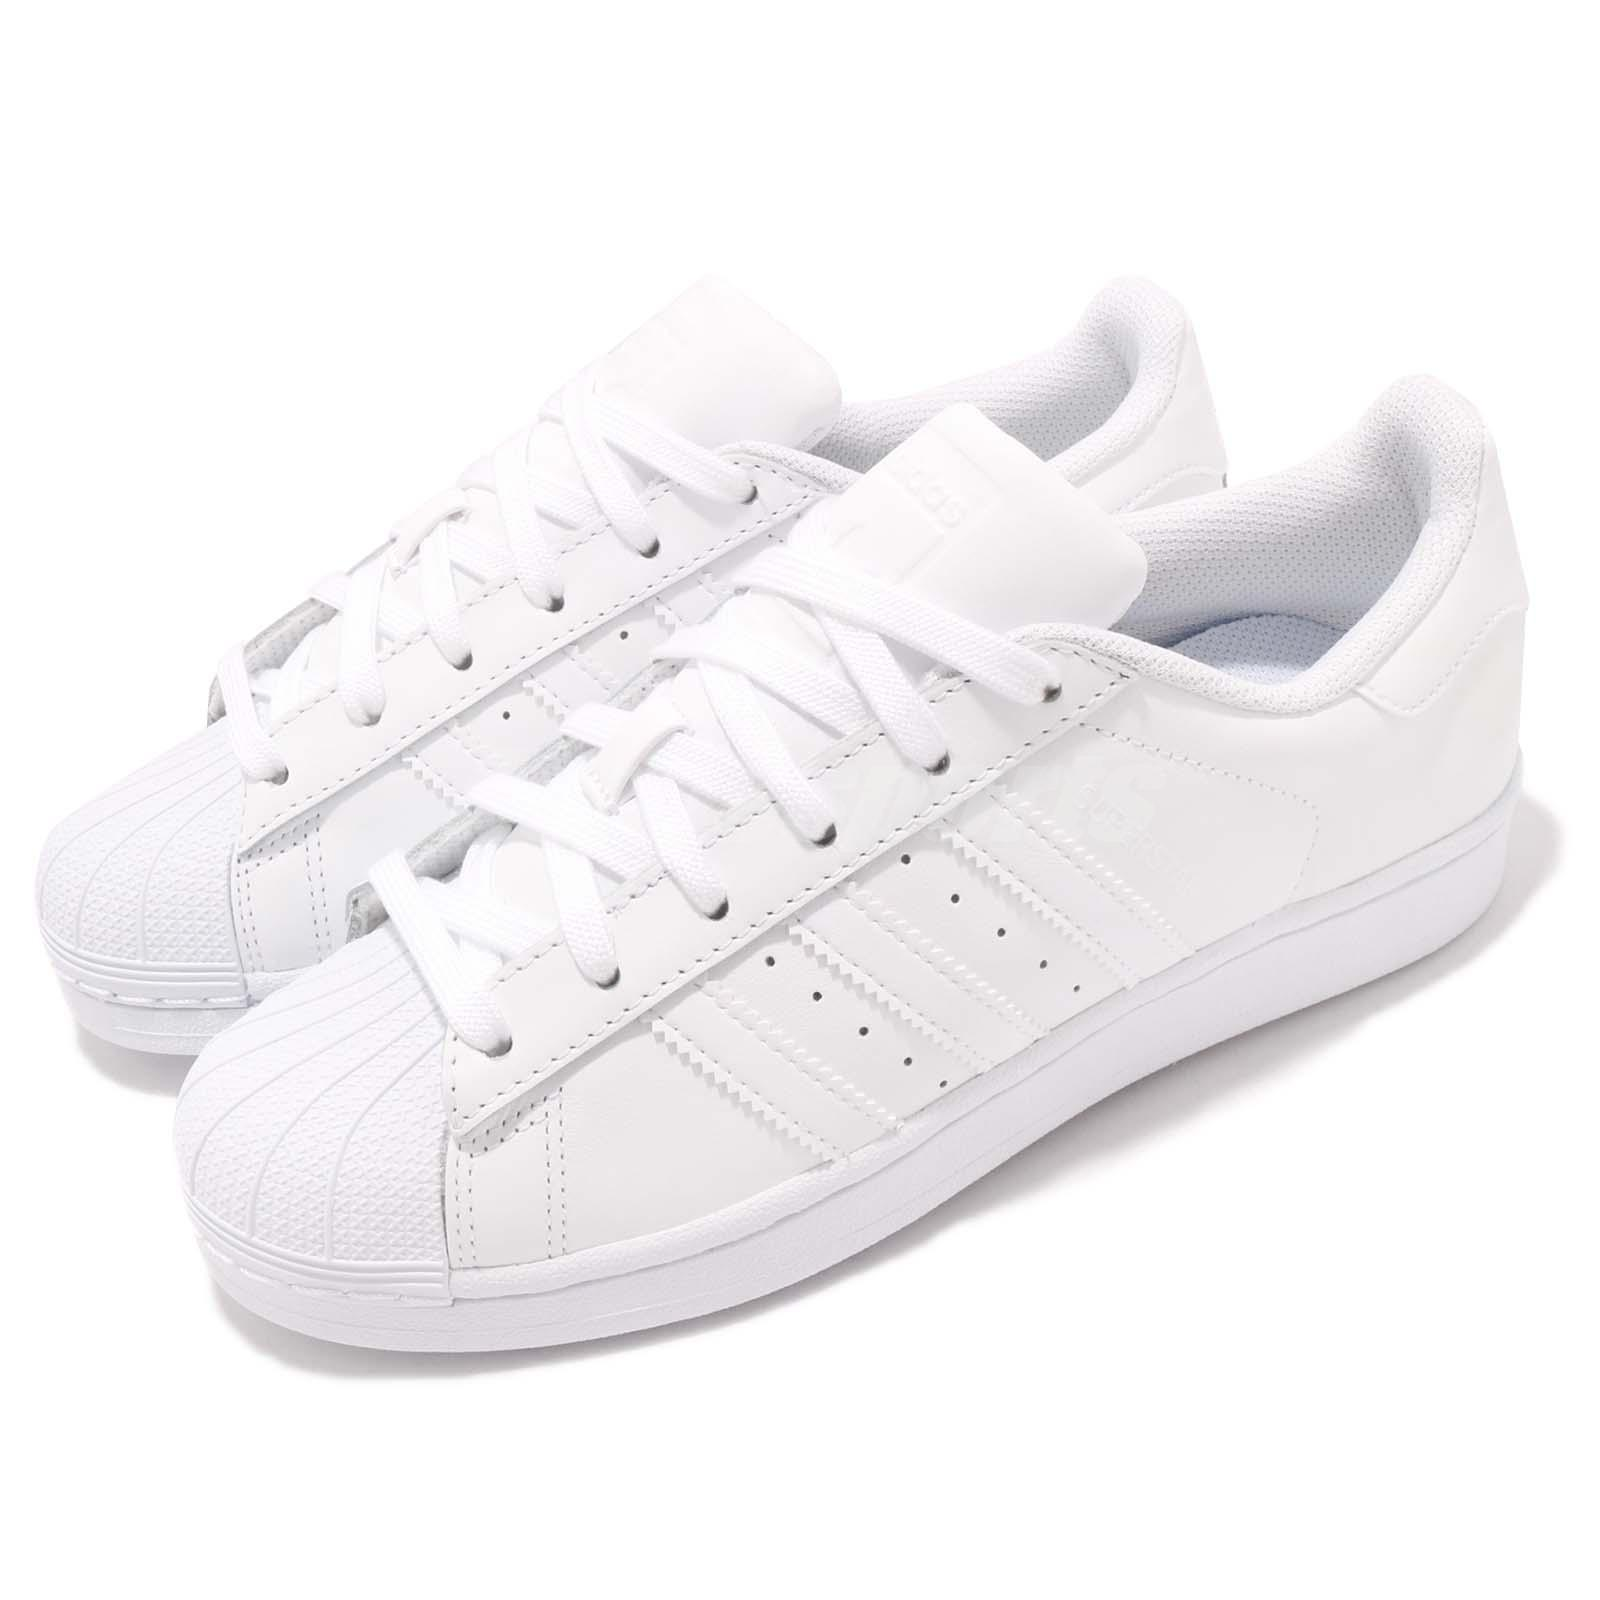 best service b05c4 6add5 Details about adidas Originals Superstar Foundation White Out Men Casual  Shoes Sneakers B27136